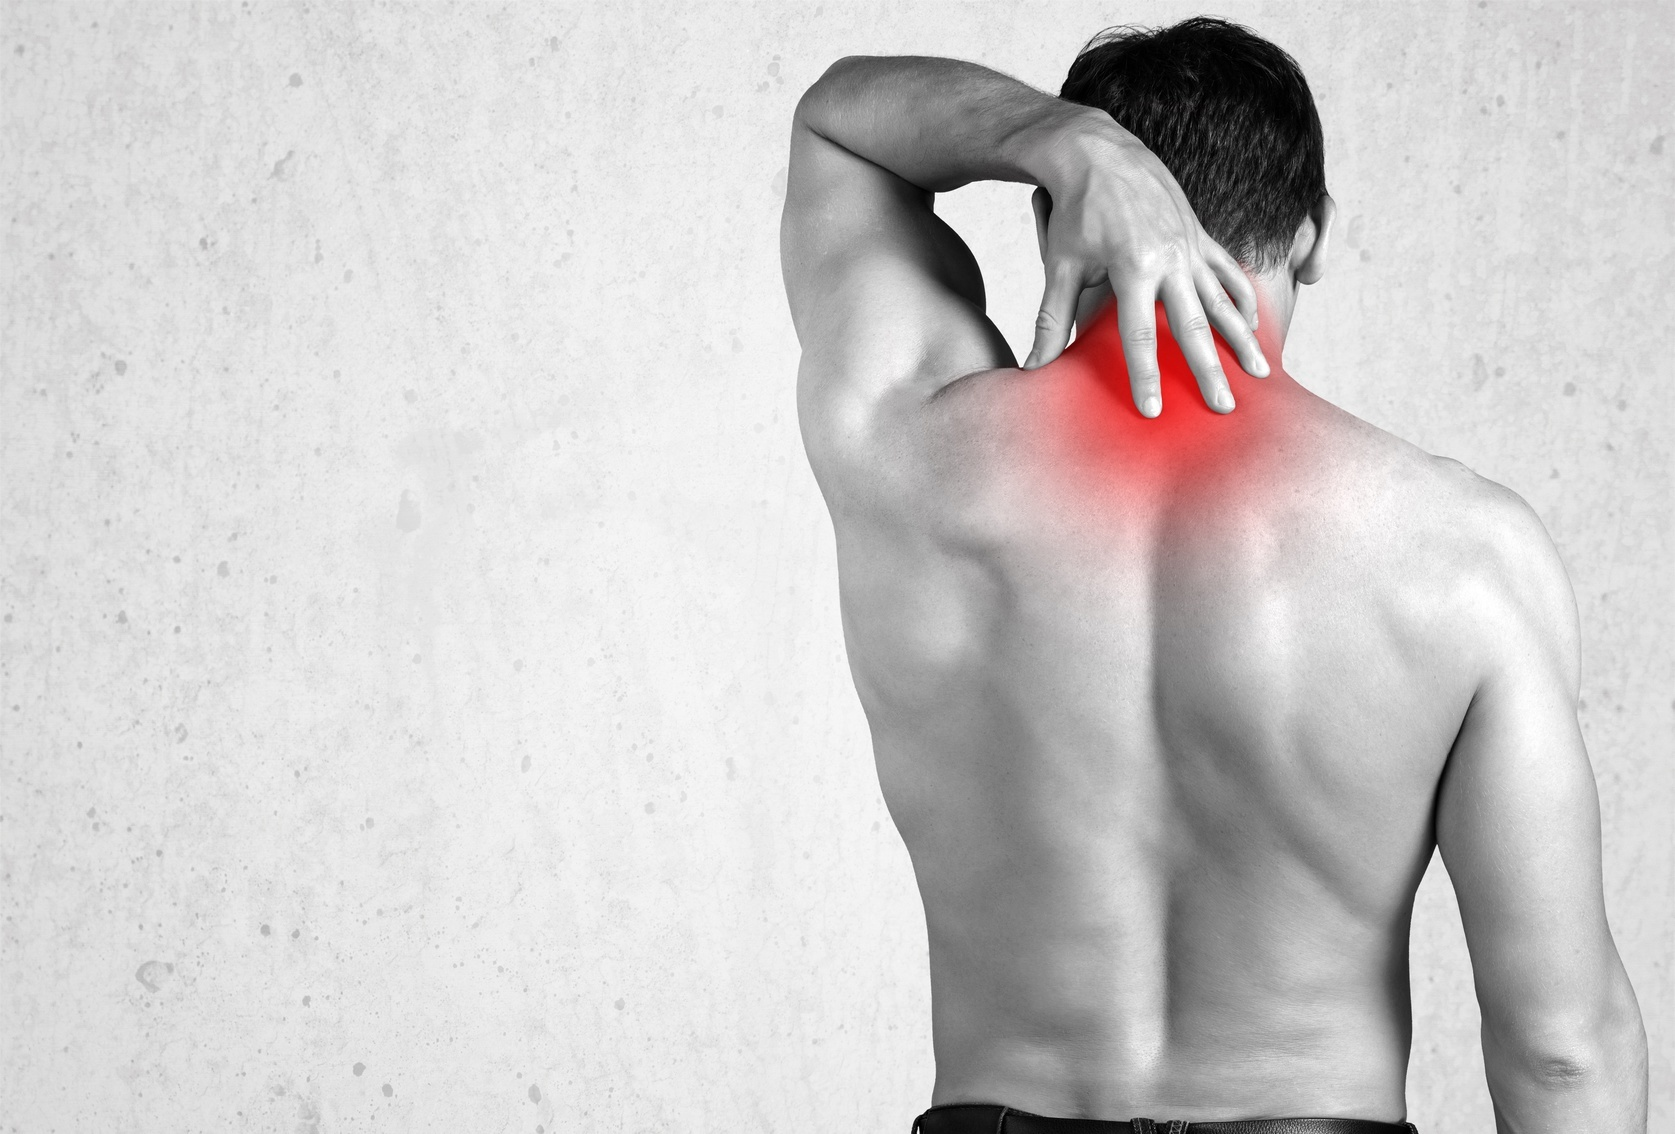 Neck Pain? Whiplash due to car or auto injury? Strained neck? Looking for a specialist that focus on neck treatment?